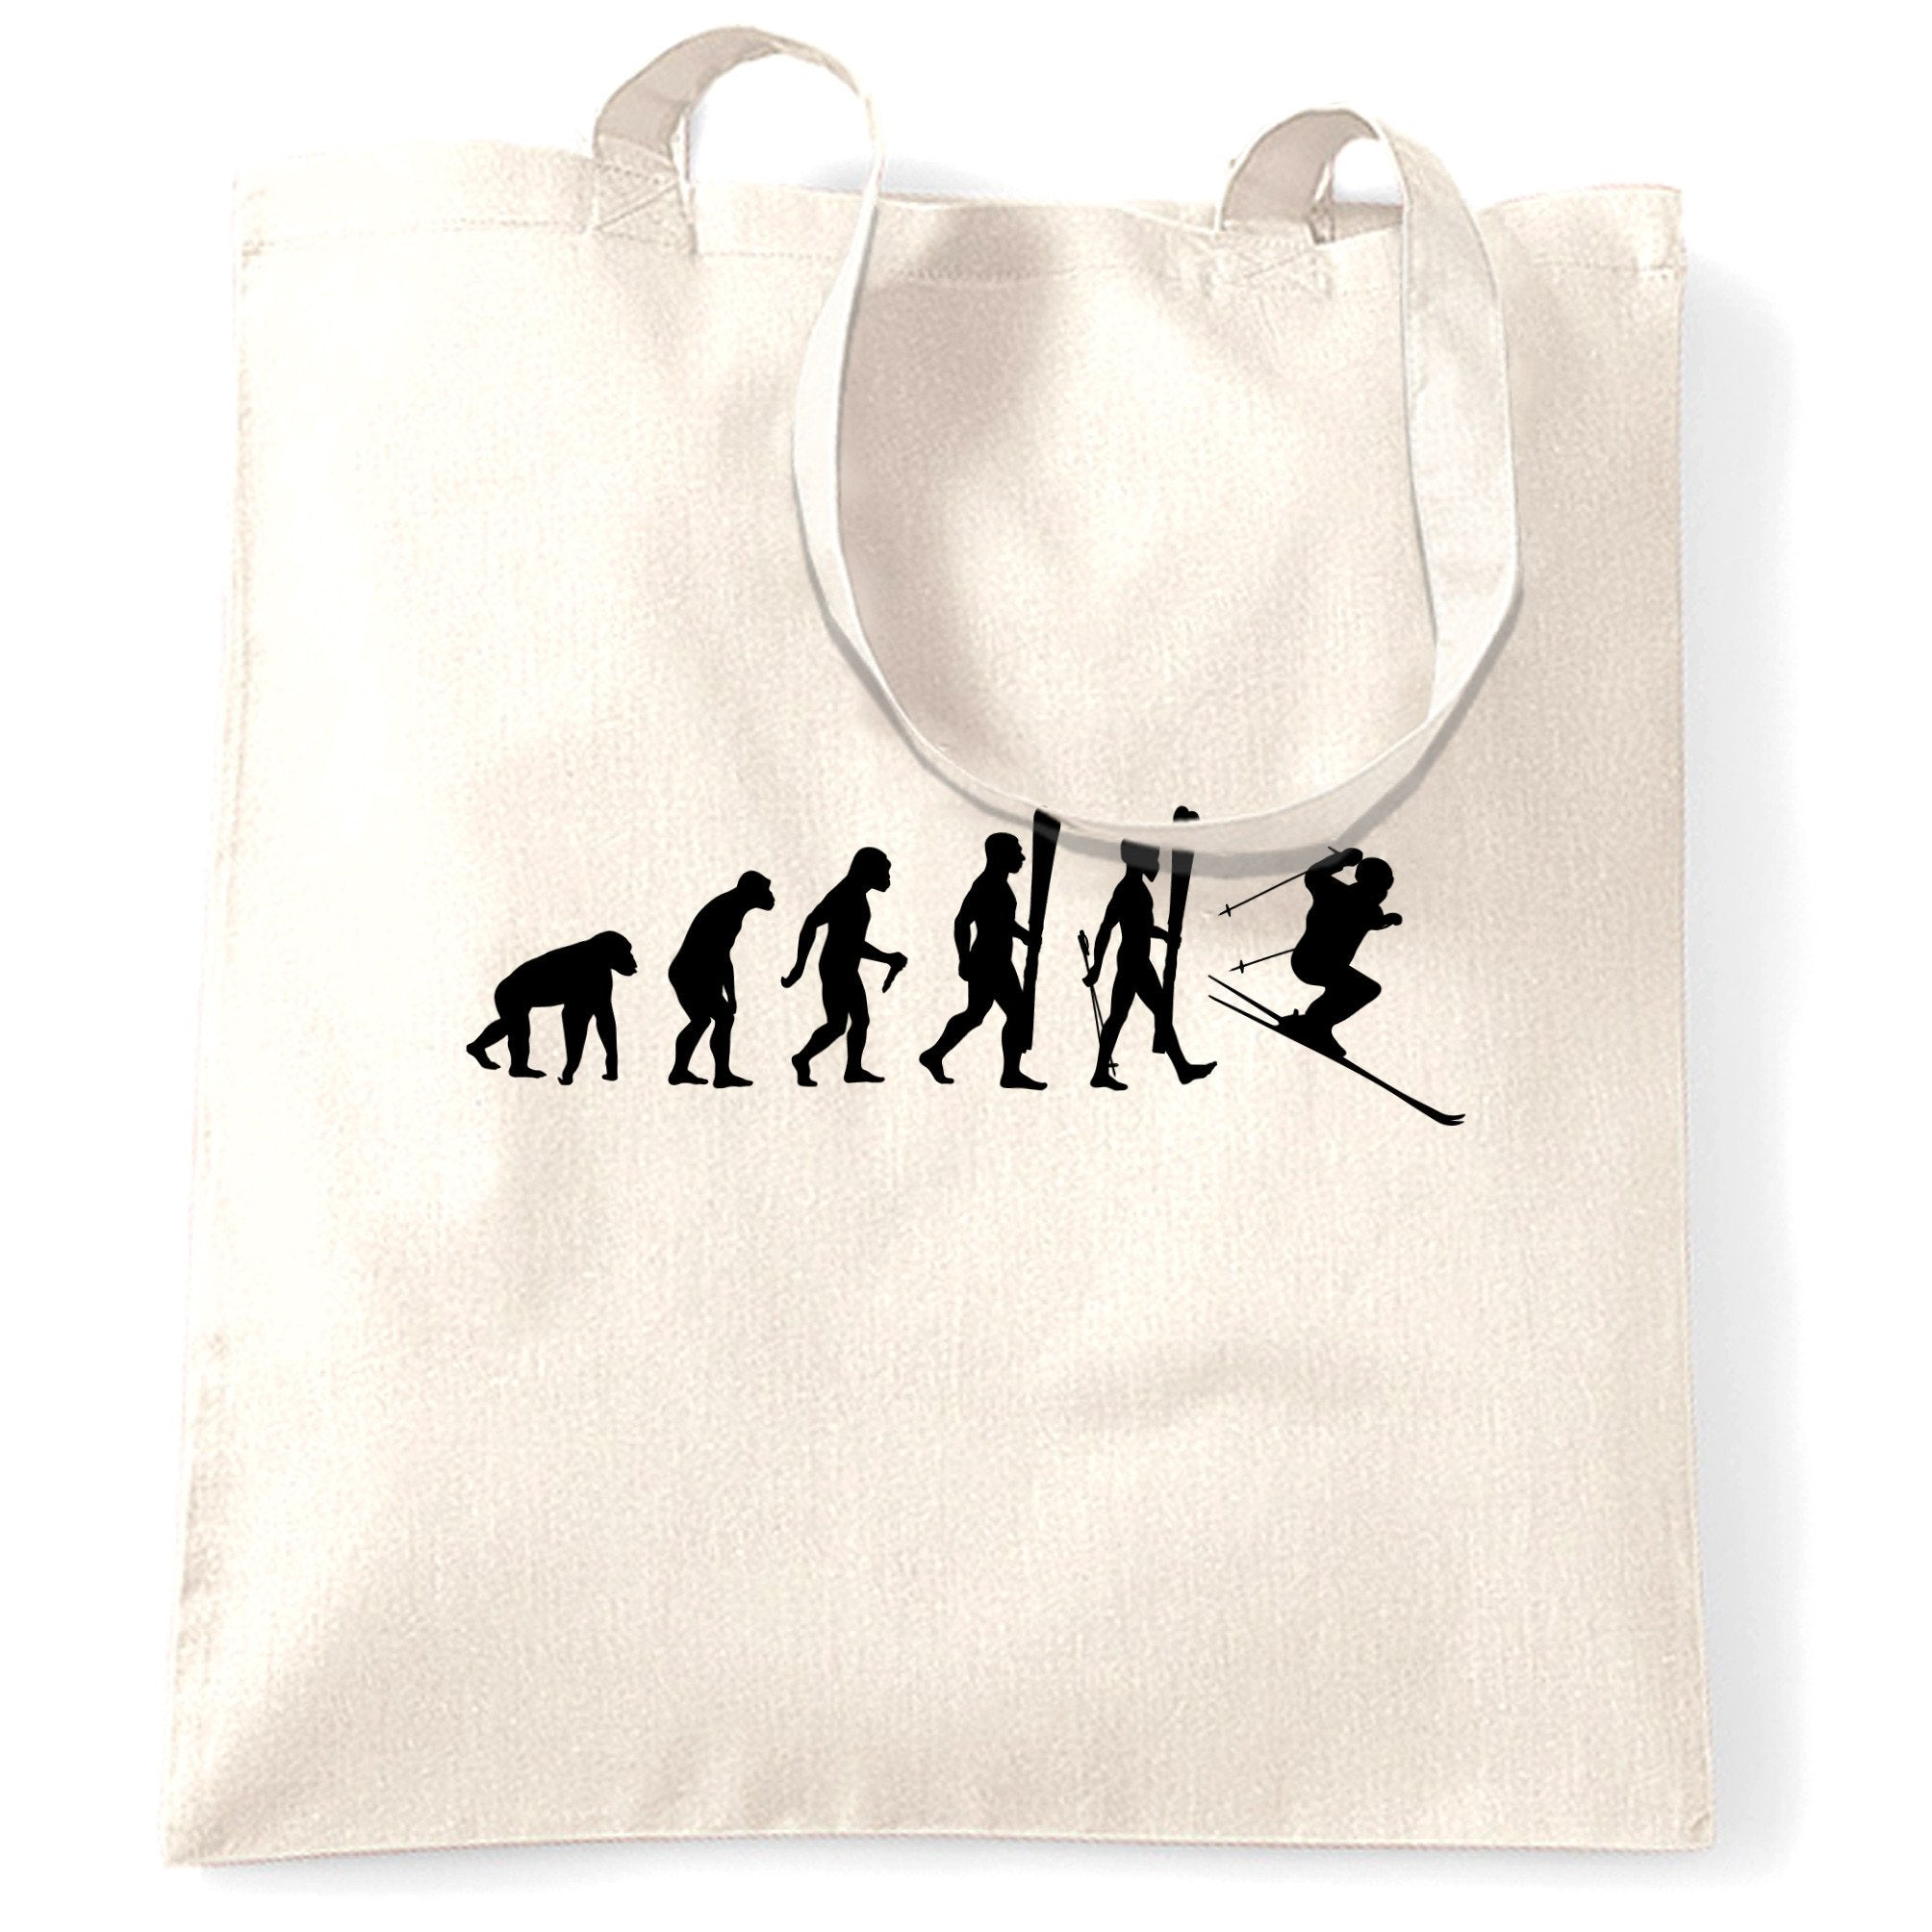 Sports Tote Bag The Evolution Of A Ski Jumper